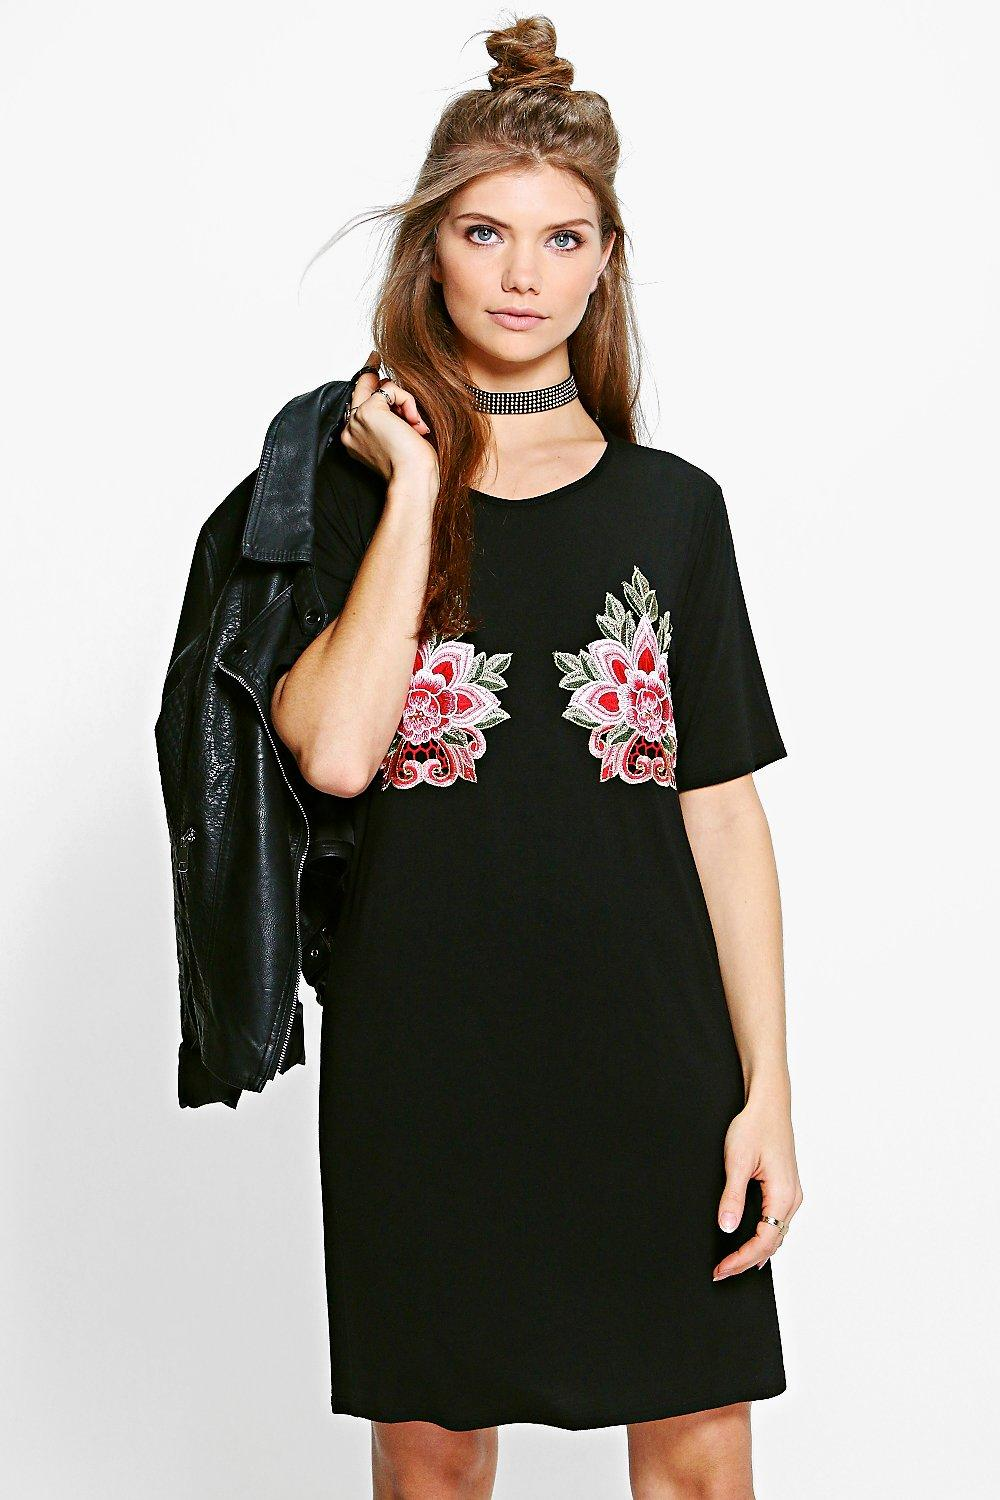 Tall Nina Premium Applique T-Shirt Dress